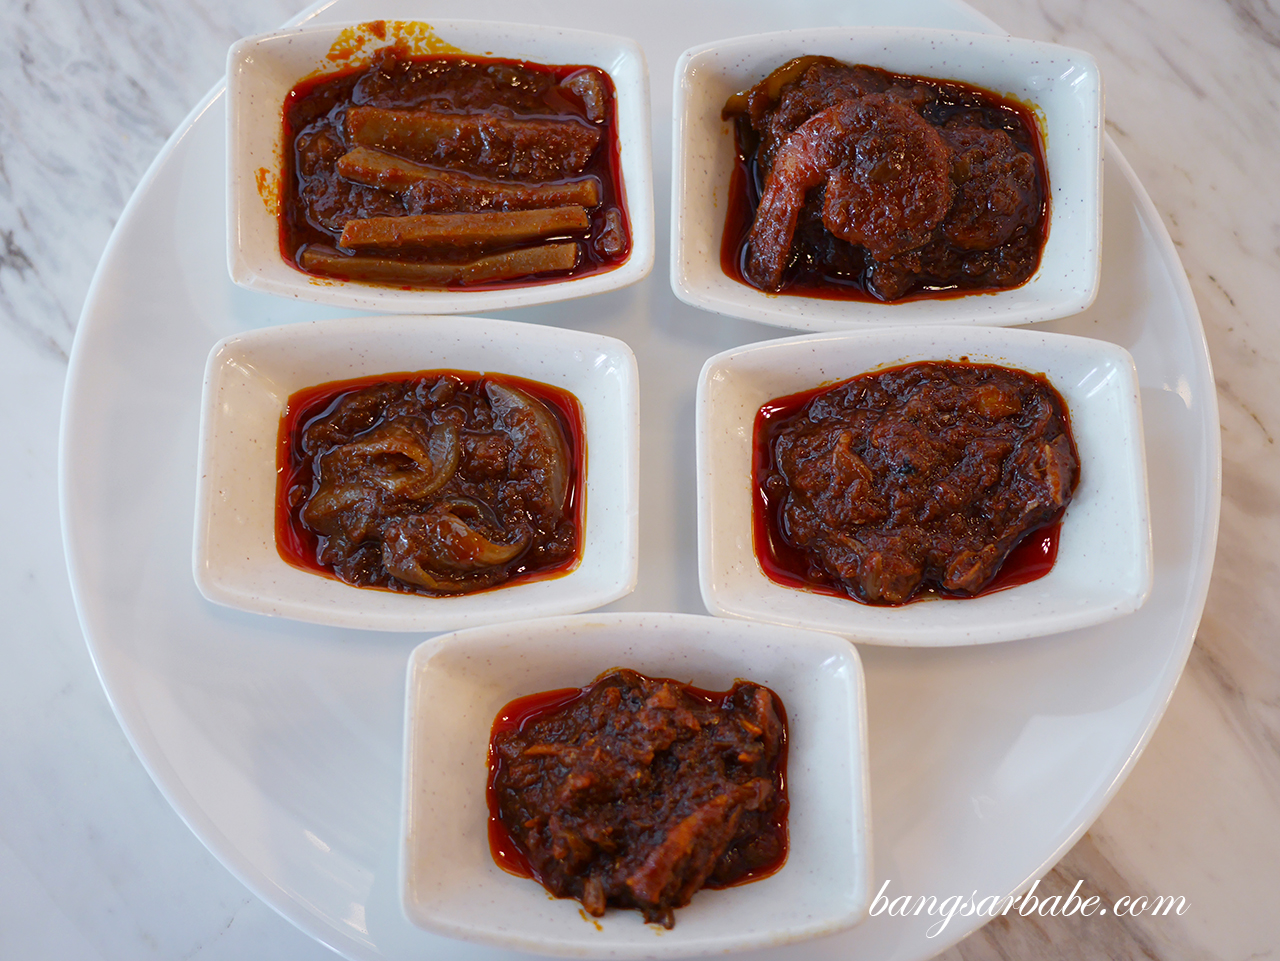 Assorted Sambal